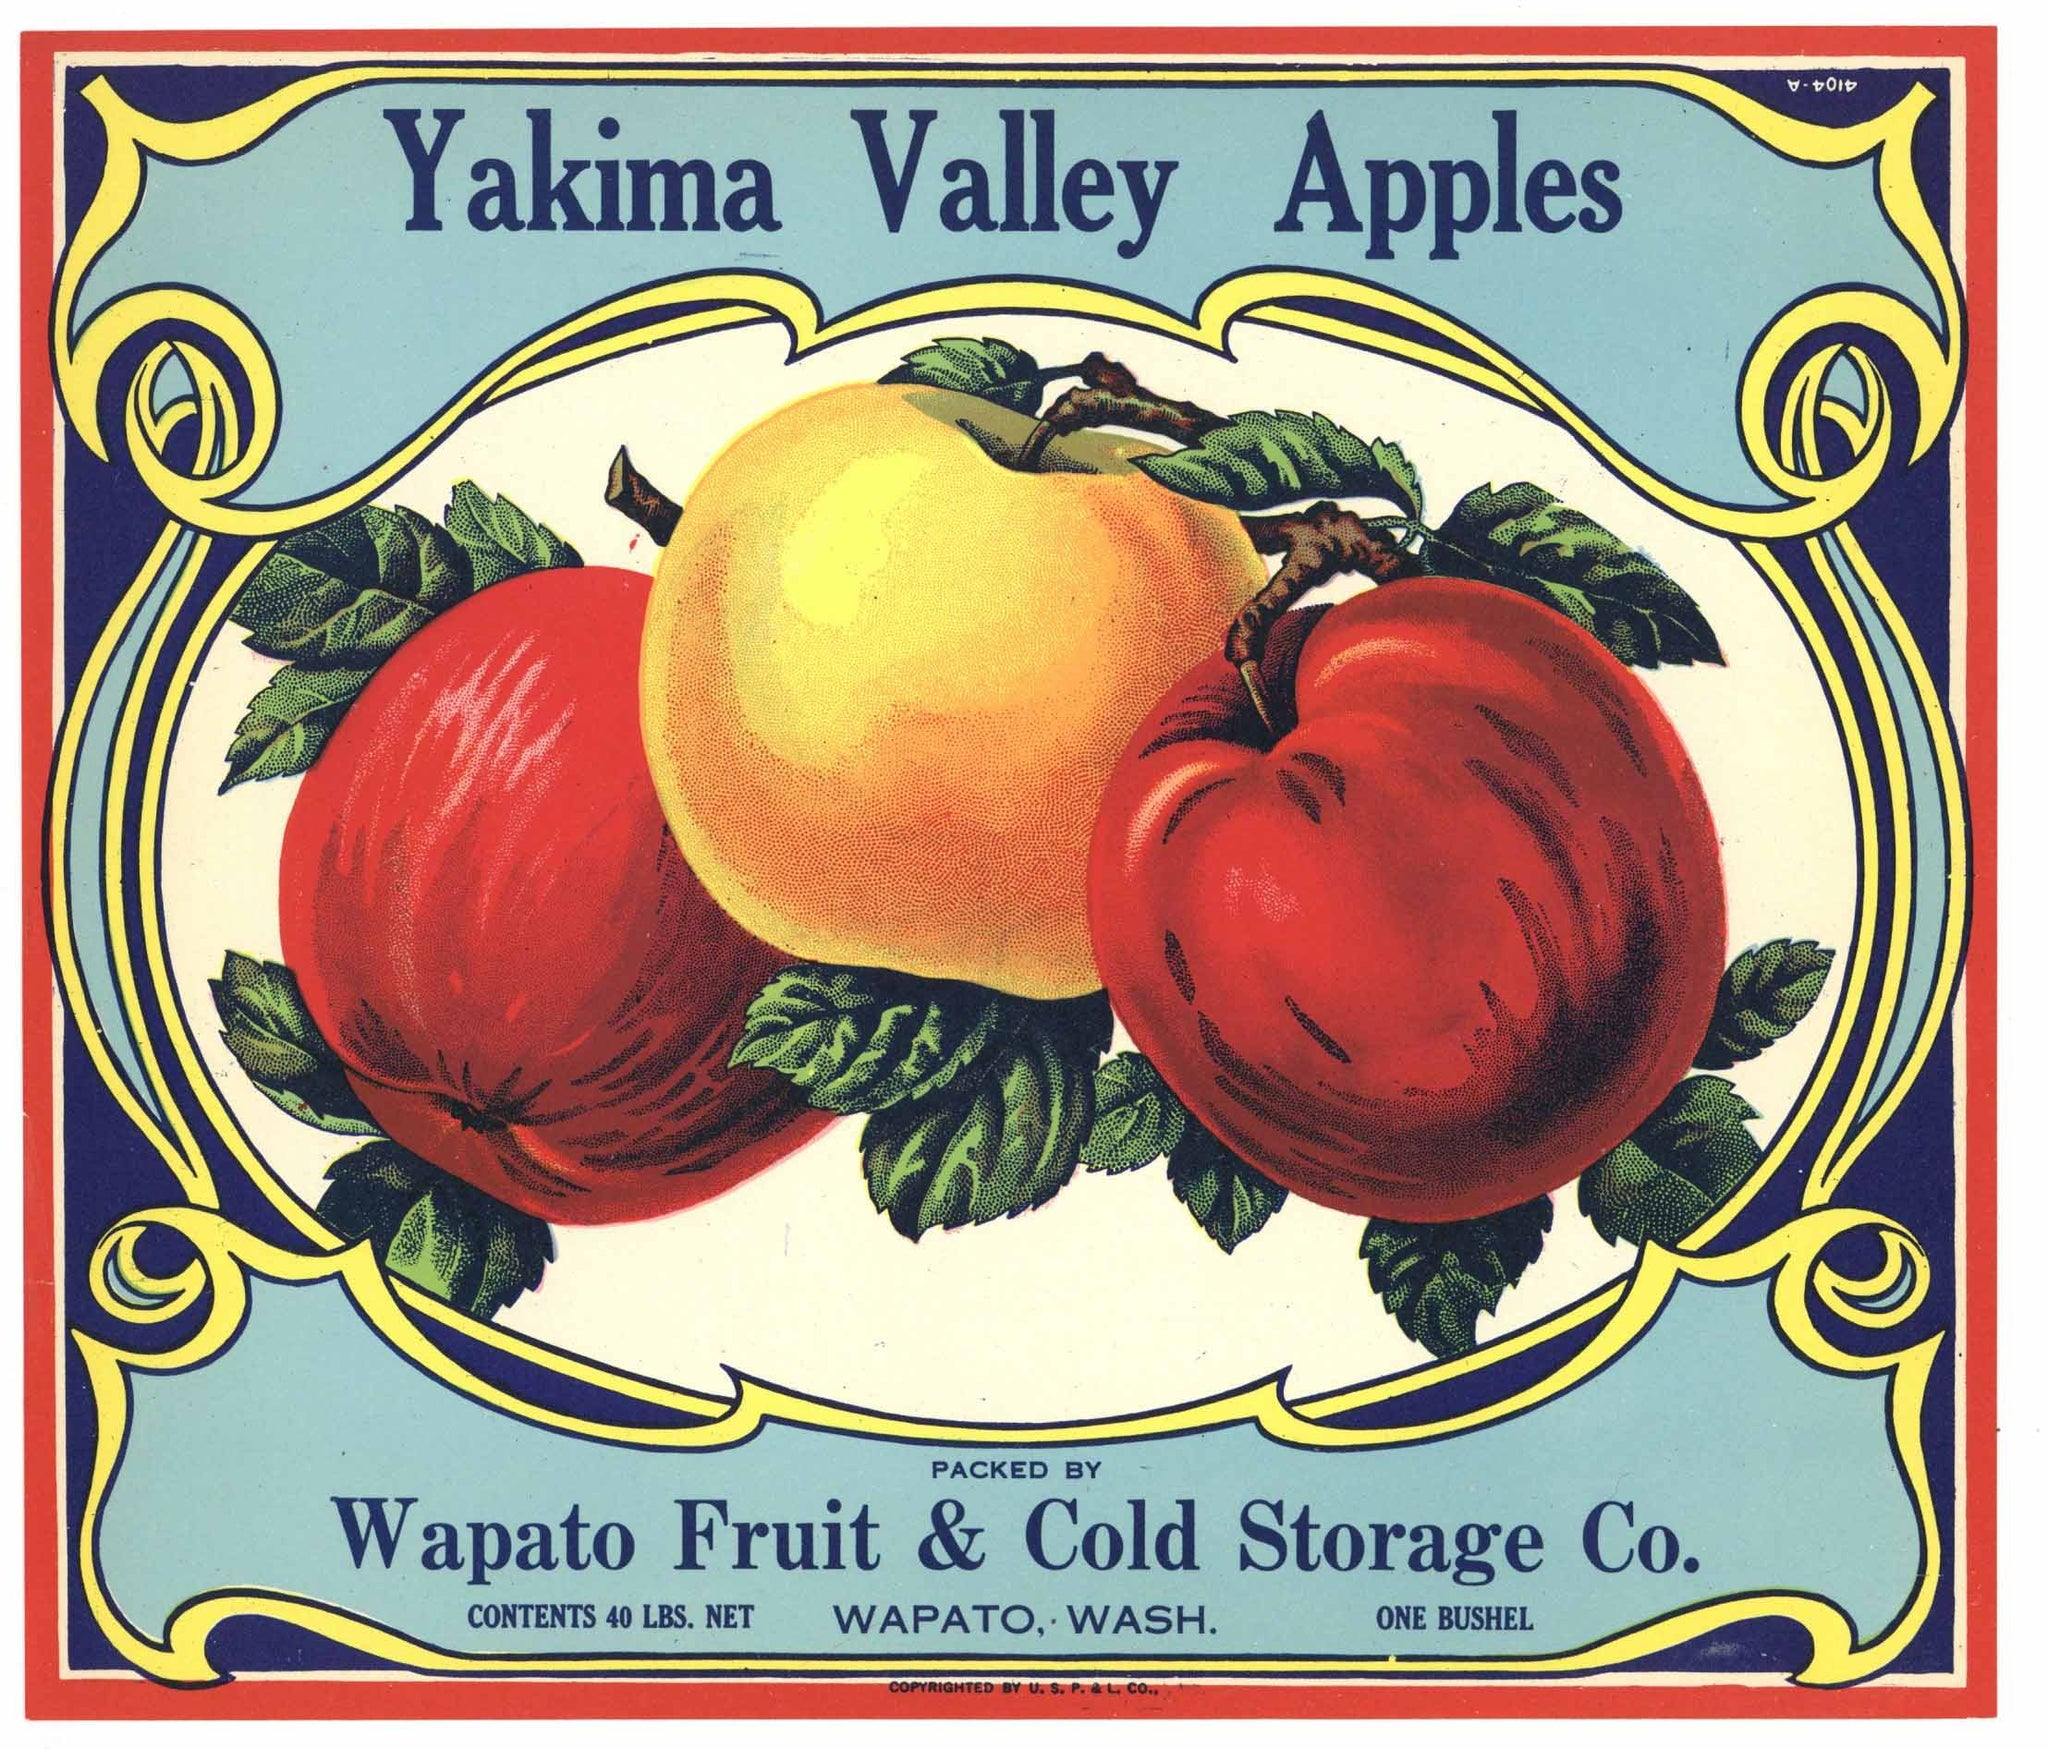 Yakima Valley Apples Brand Vintage Washington Apple Crate Label